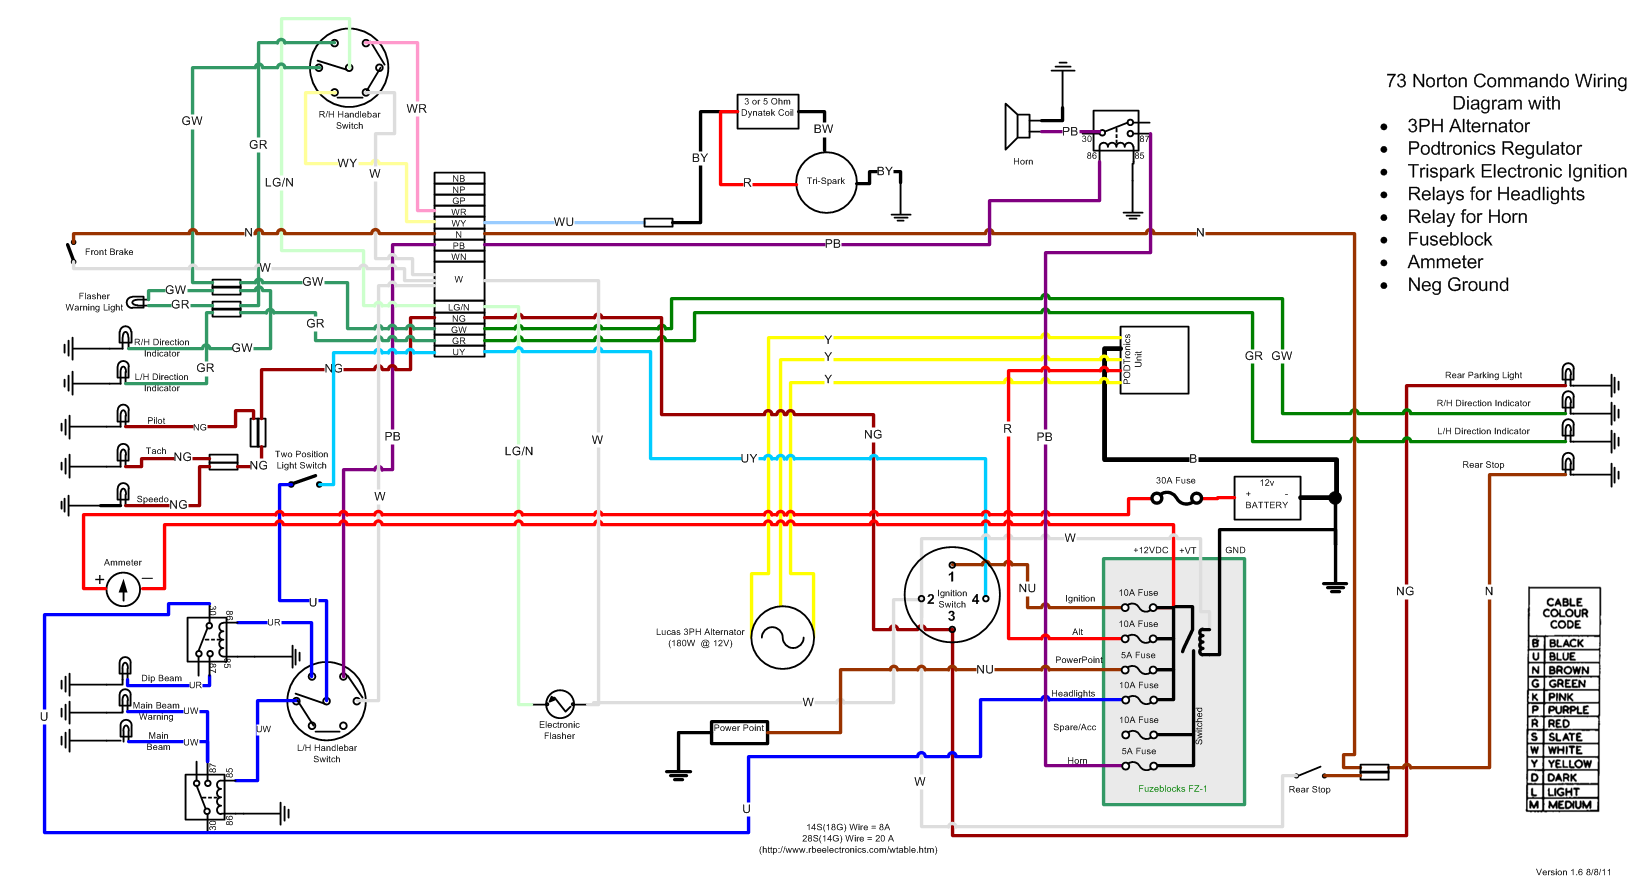 73wiringdiagram norton commando workshop companion workshop wiring diagram at panicattacktreatment.co